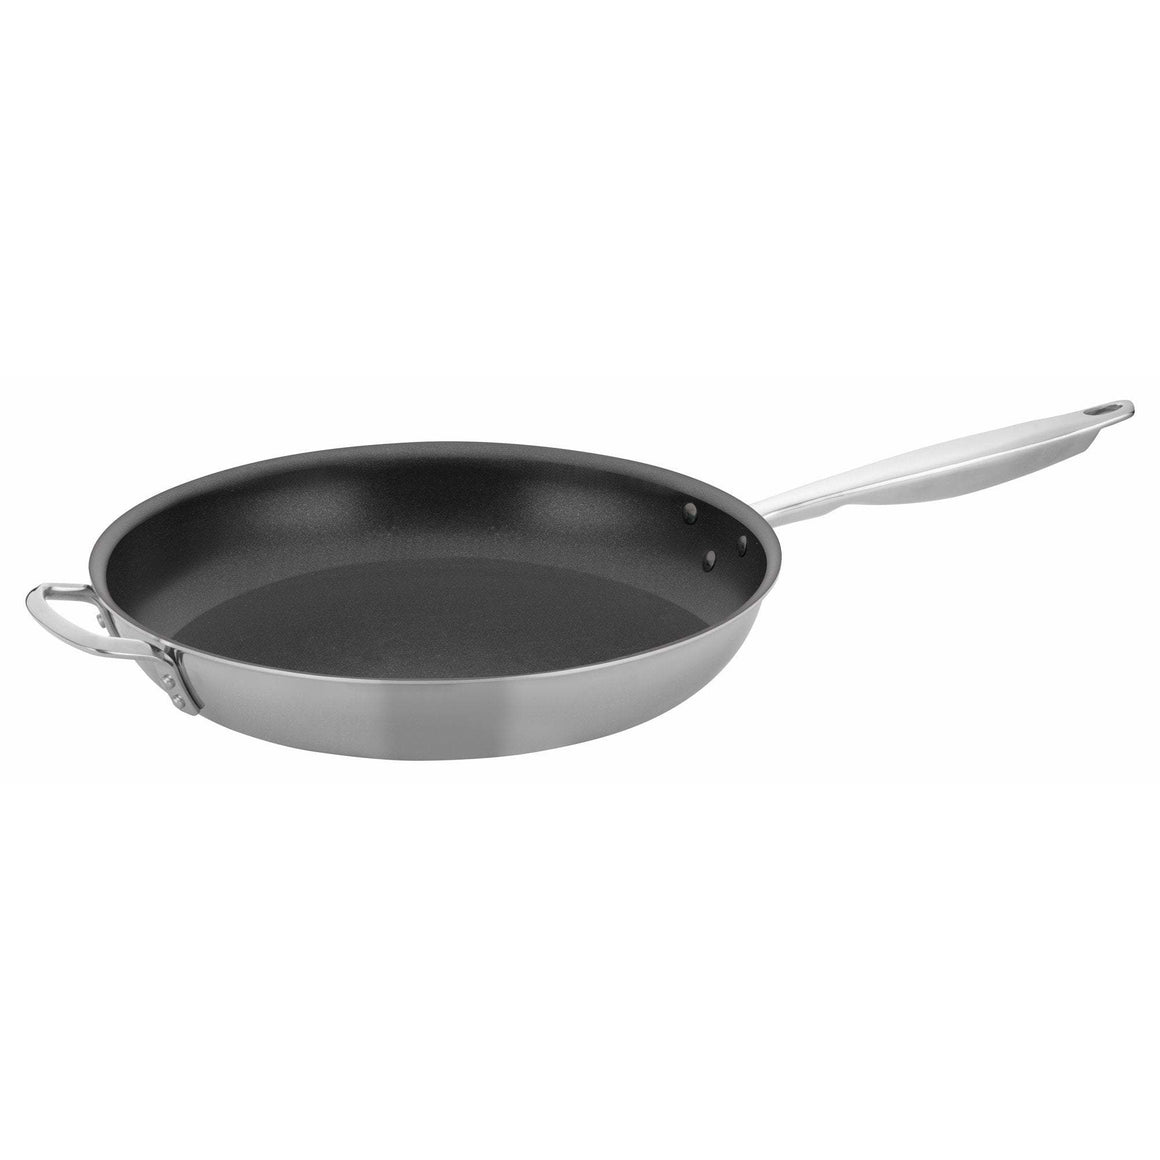 "Winco - TRI-GEN™ Tri-Ply Fry Pan, Non-stick, 14"" Excalibur - Cookware - Maltese & Co New and Used  restaurant Equipment"